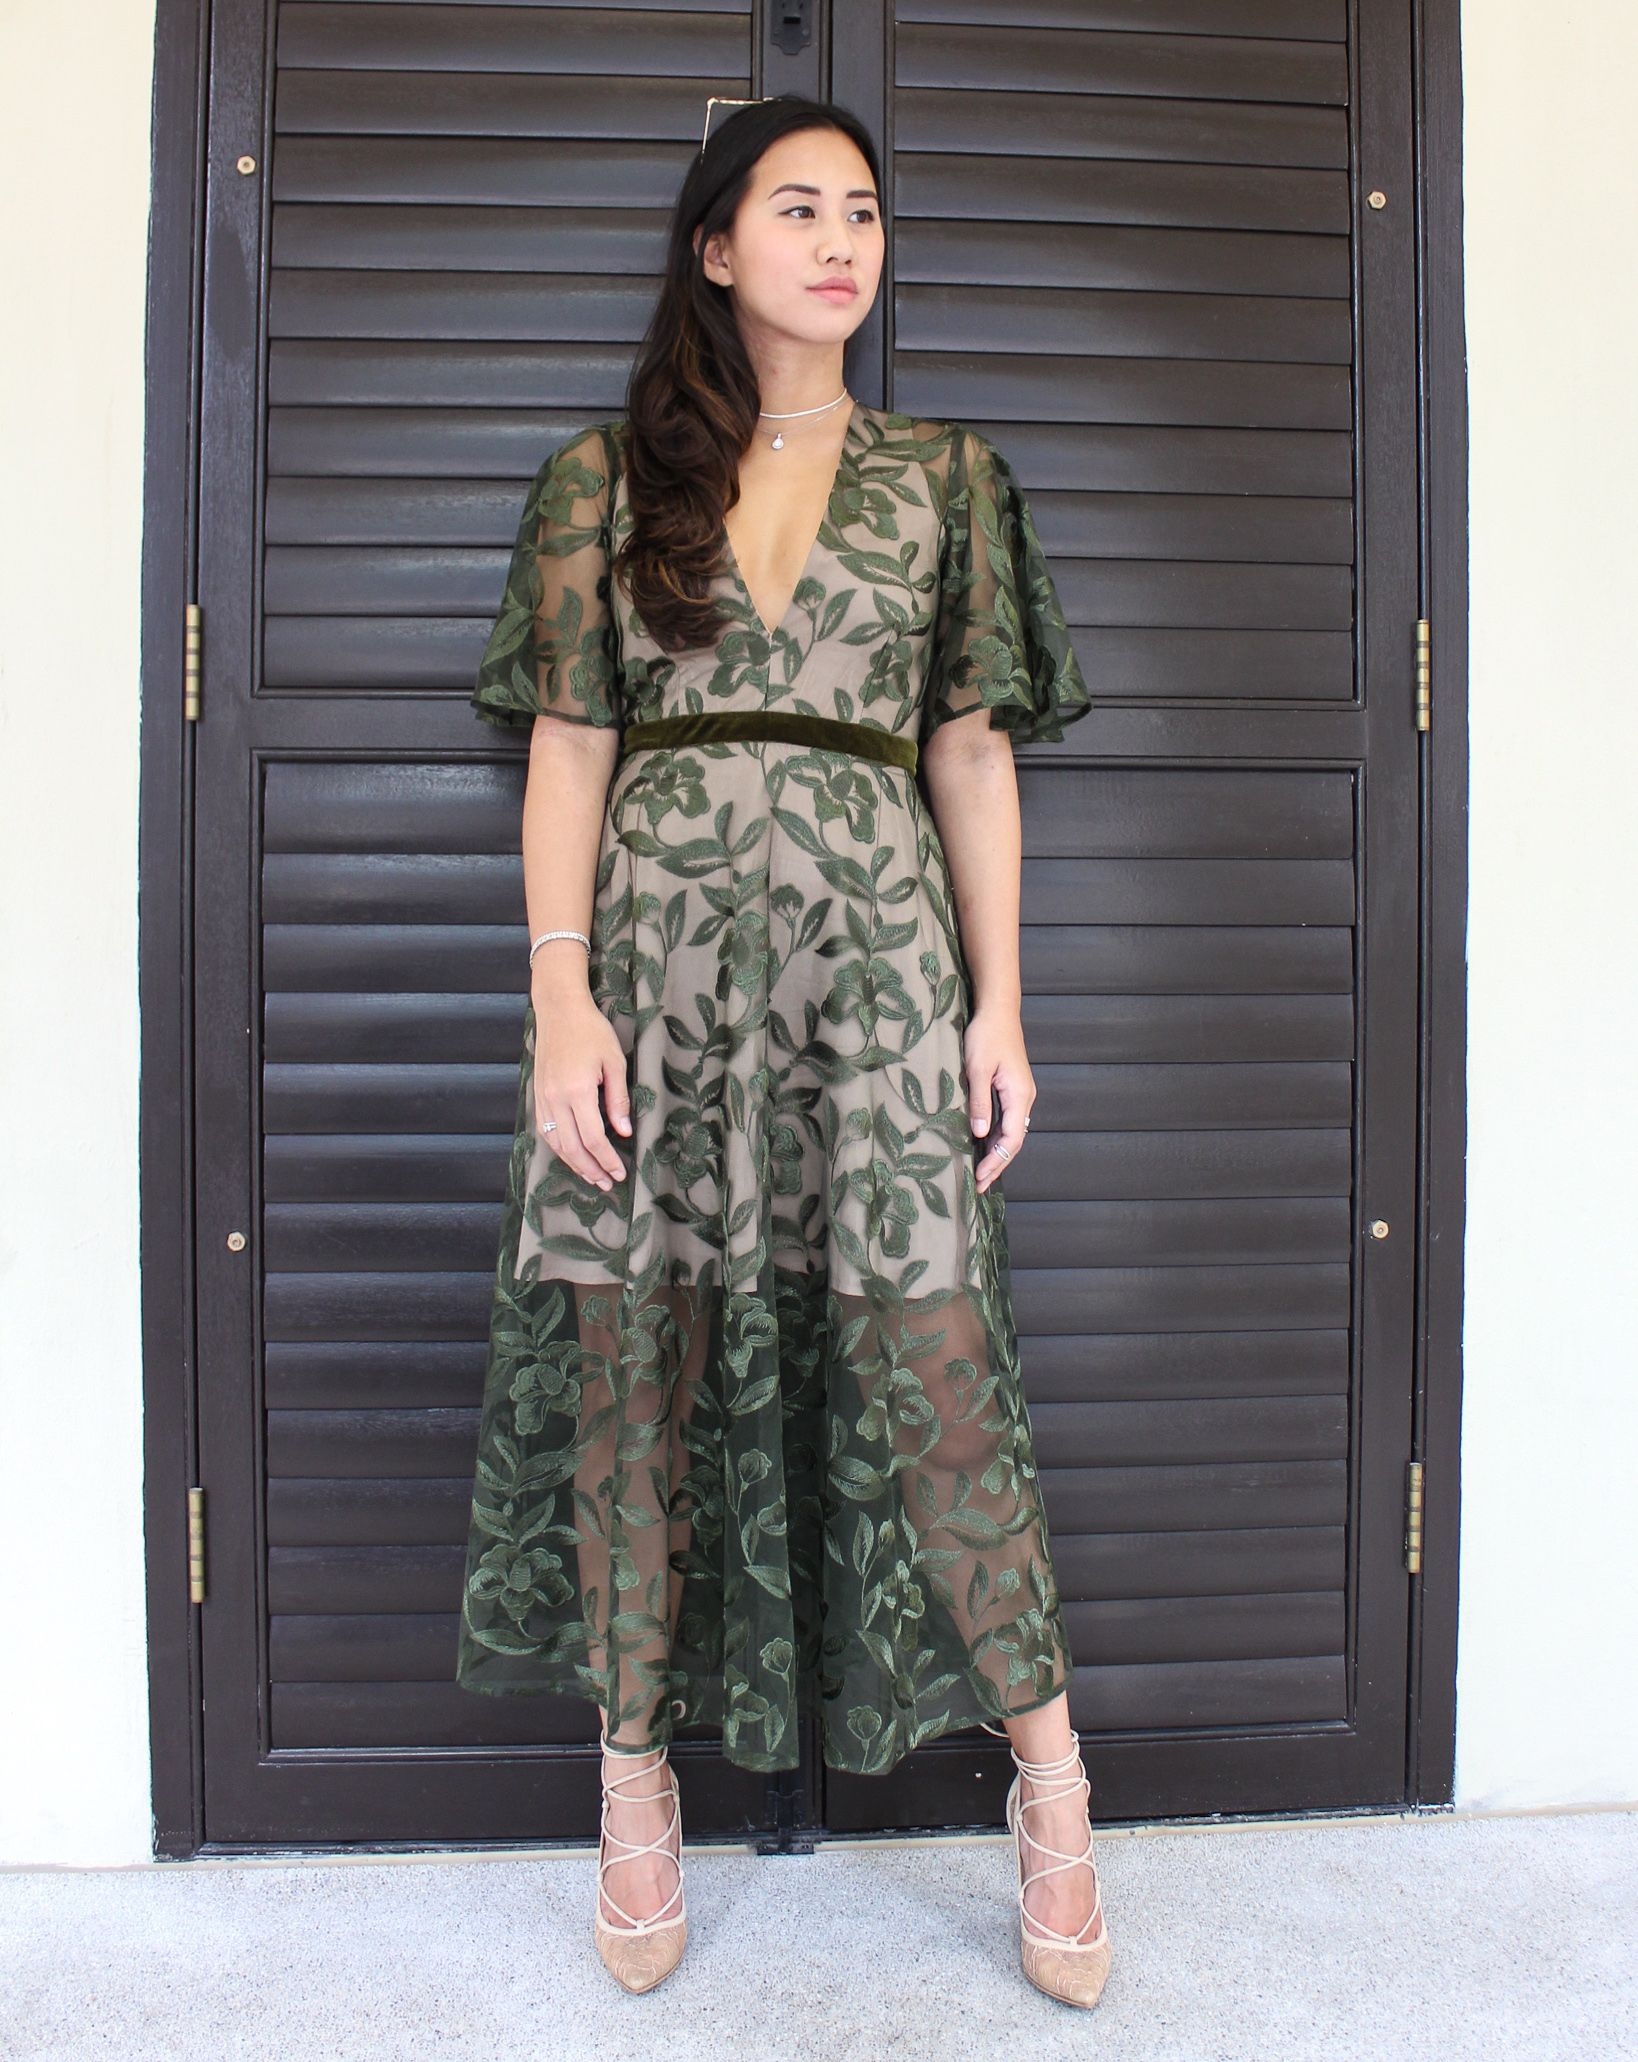 Green dress for wedding  Lucia Embroidered Backless Dress Olive  WEDDING GUEST  Pinterest